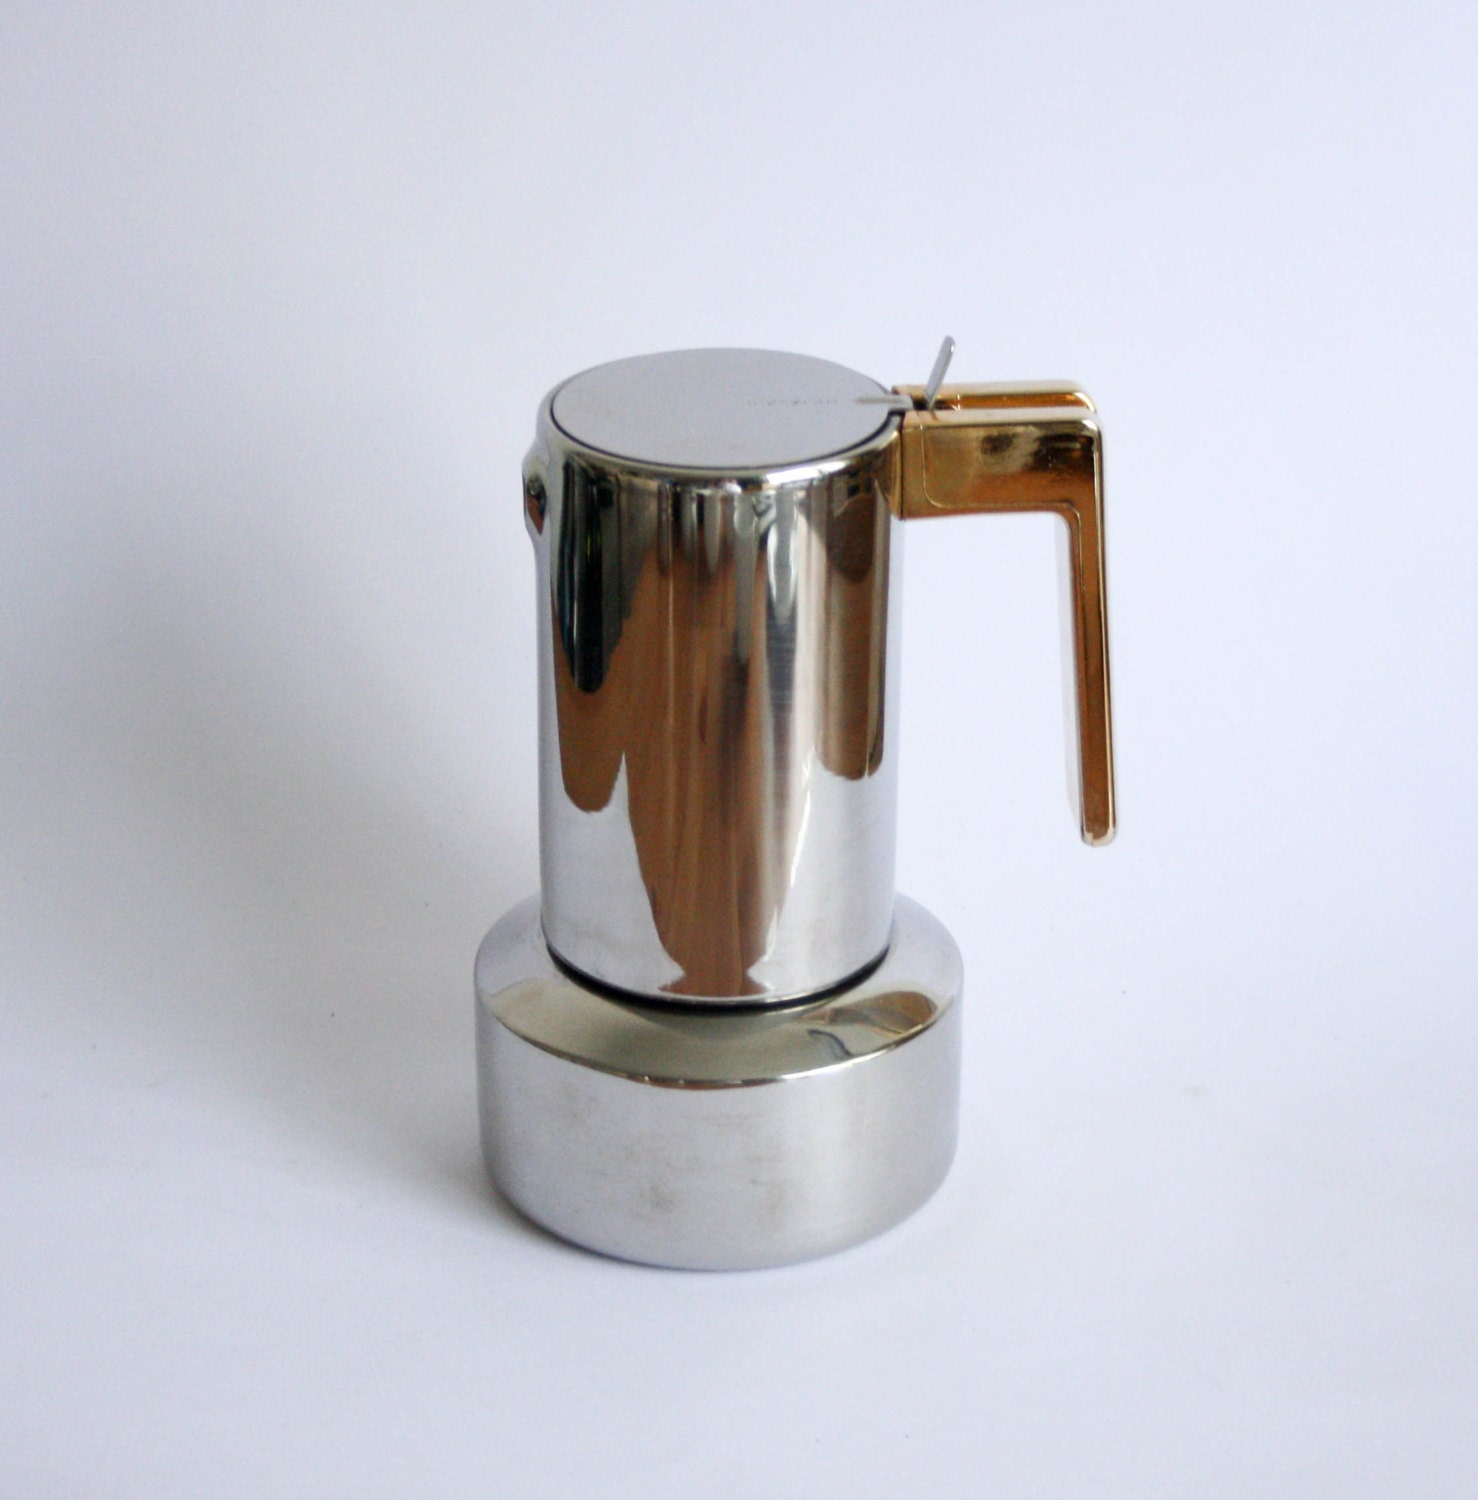 Italian Coffee Maker Old : RESERVED Vintage Inoxpran Coffee Maker Made in Italy